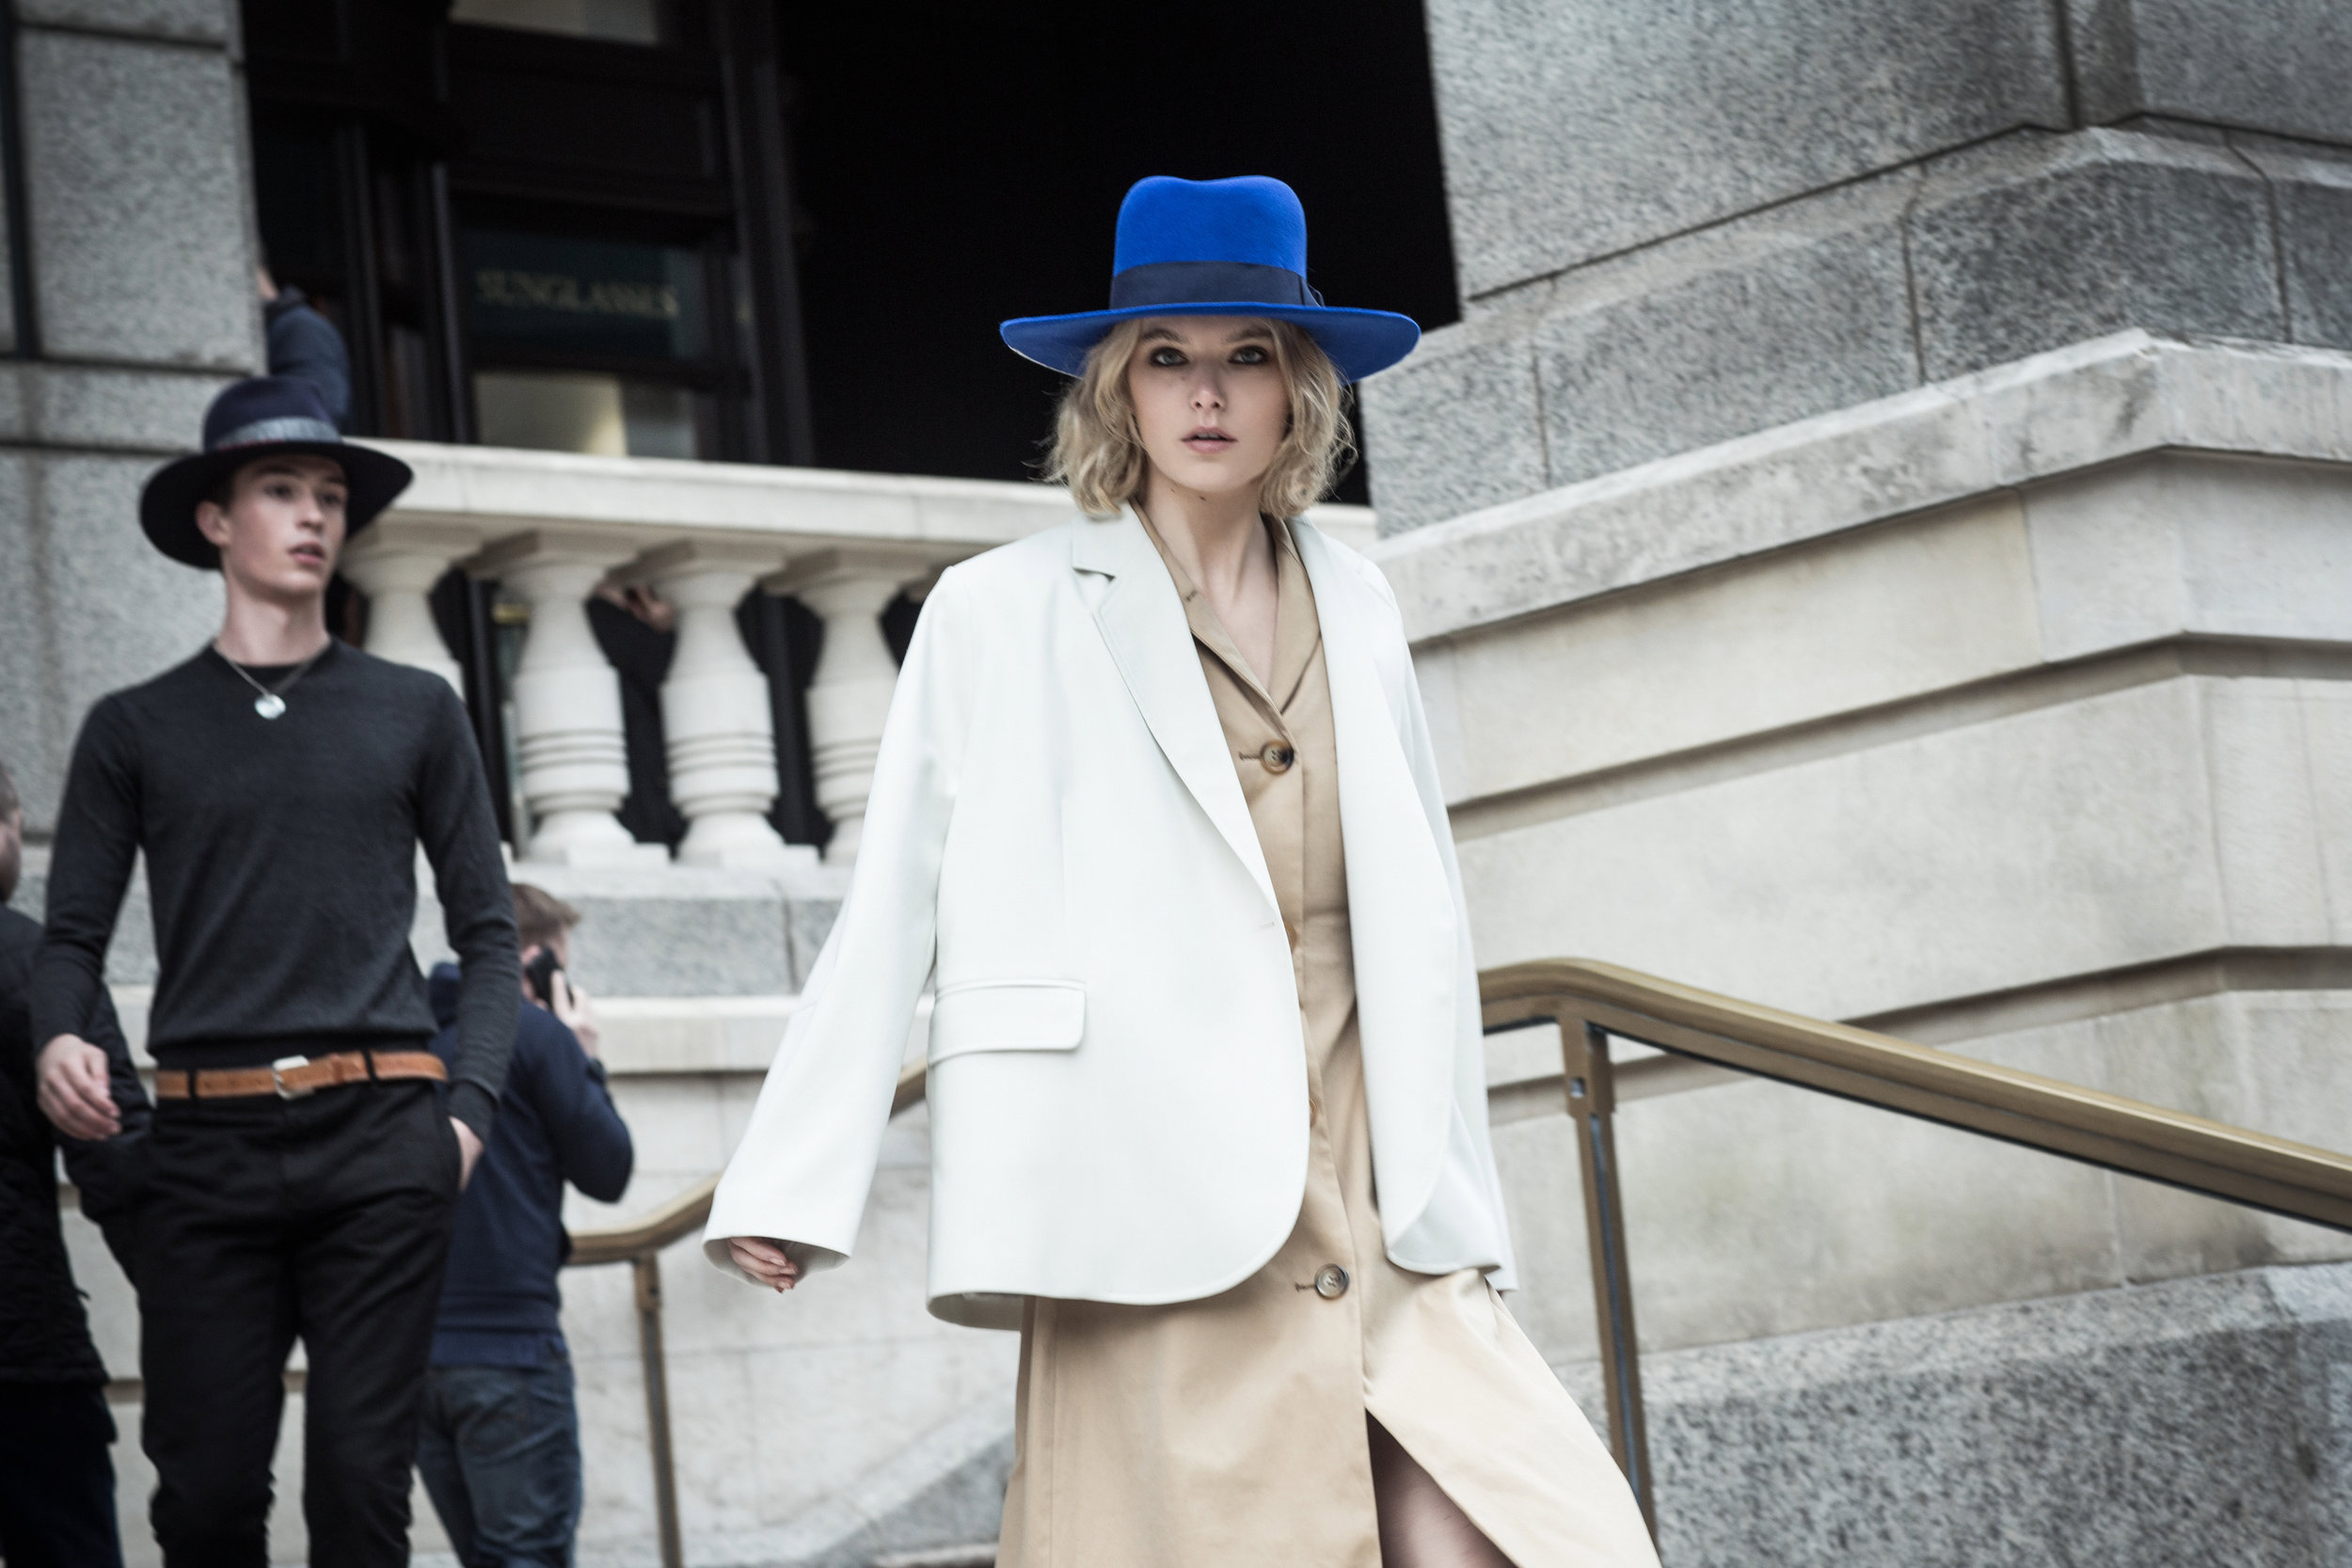 Mason hat from womens Spring/Summer 19 collection.